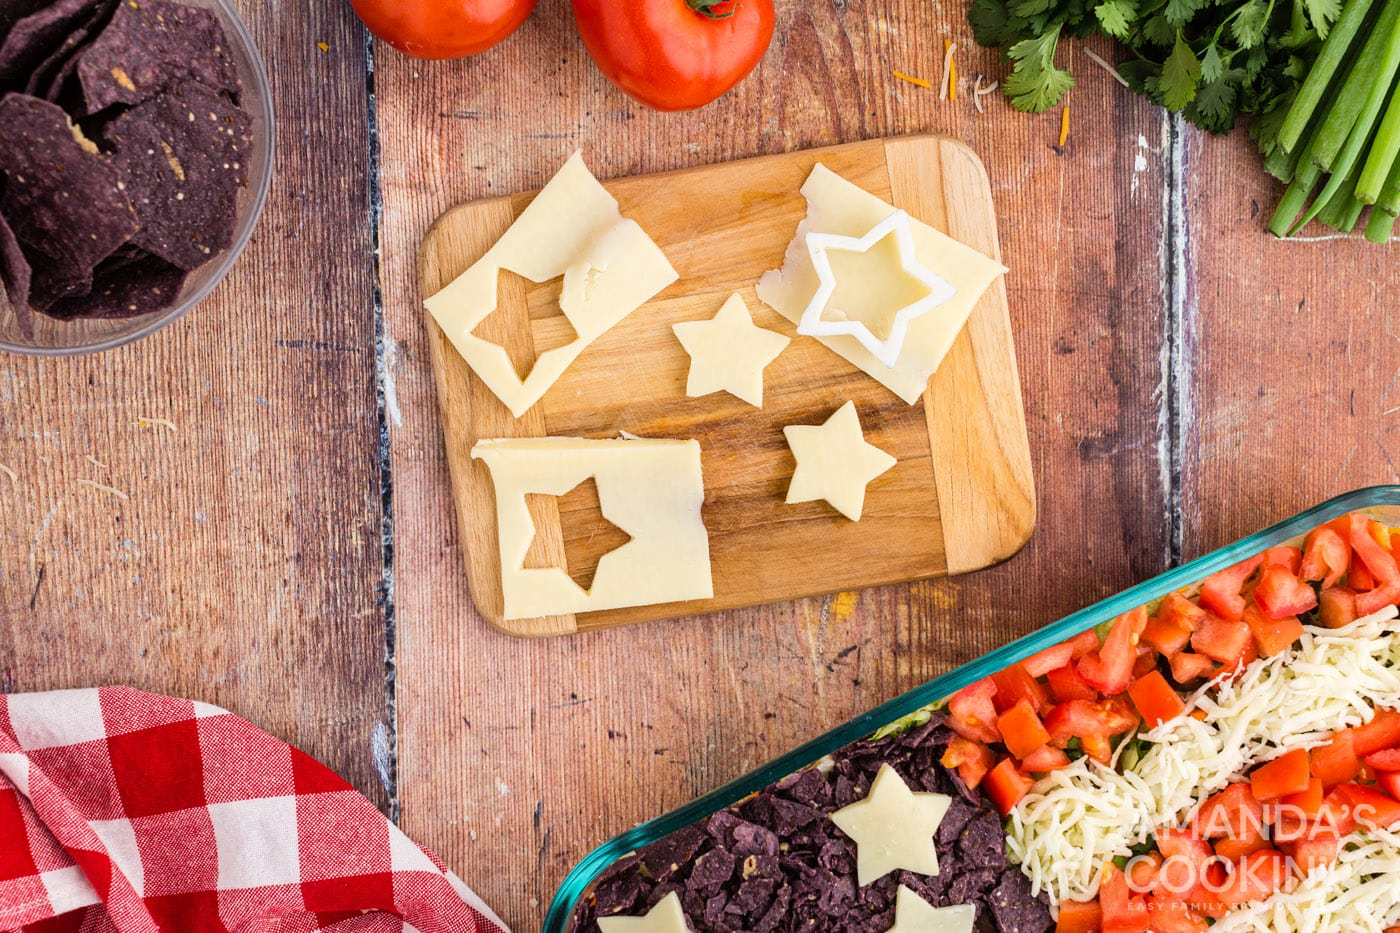 star shapes cut from cheese